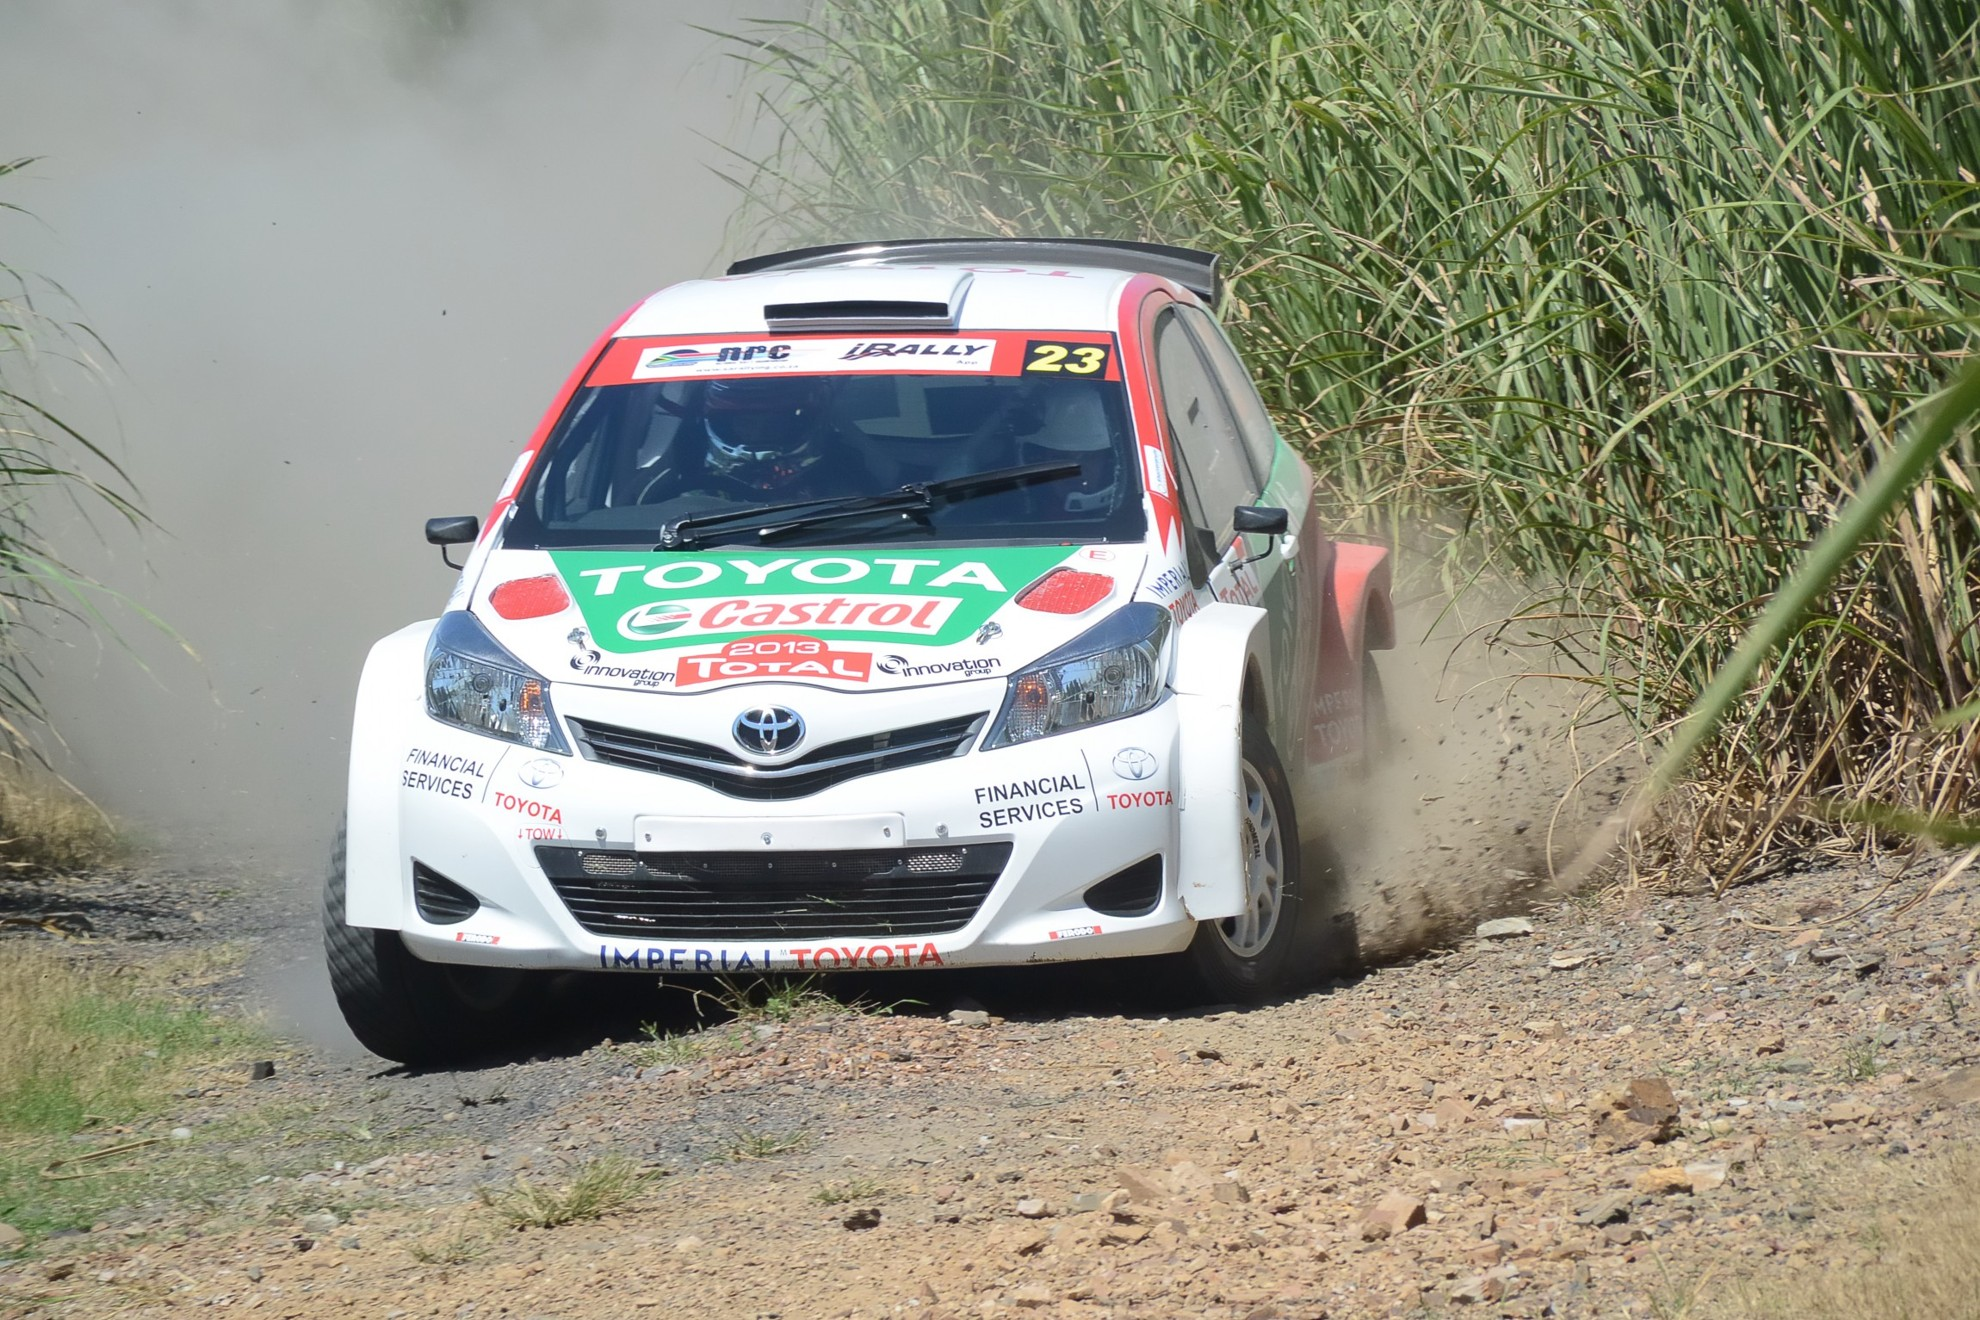 Toyota Motorsport Tackles Sasol Rally With All New Yaris